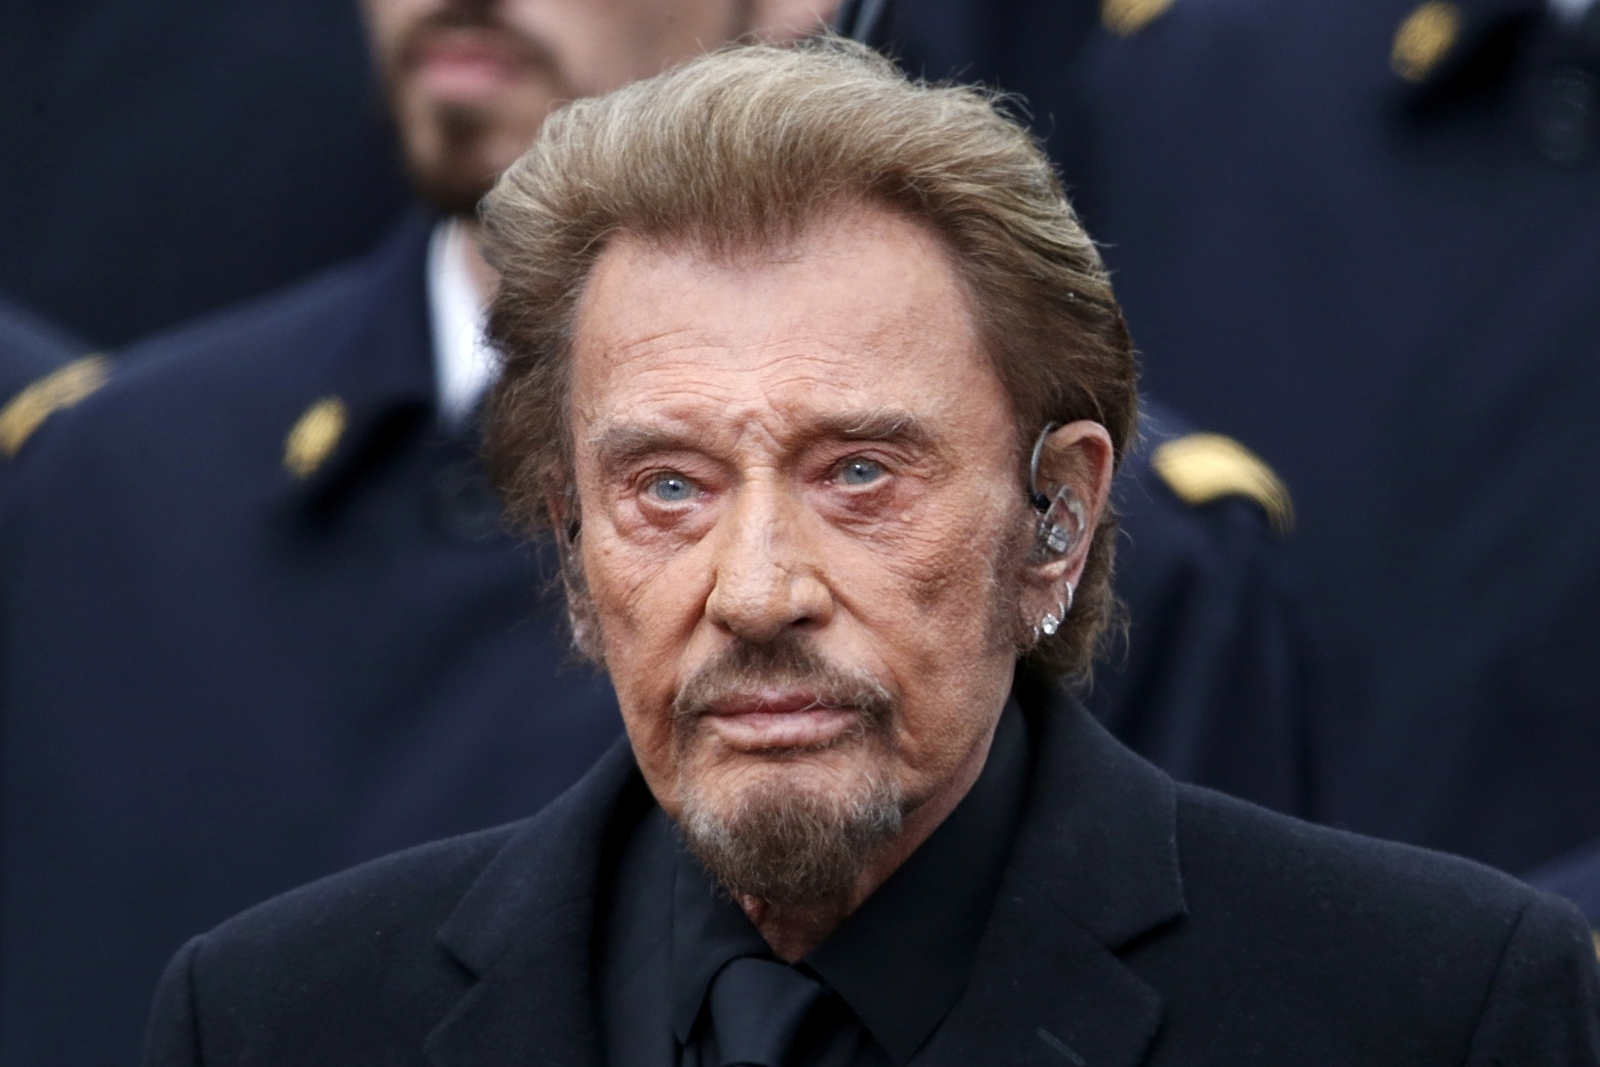 Johnny Hallyday, 'French Elvis,' dead at 74